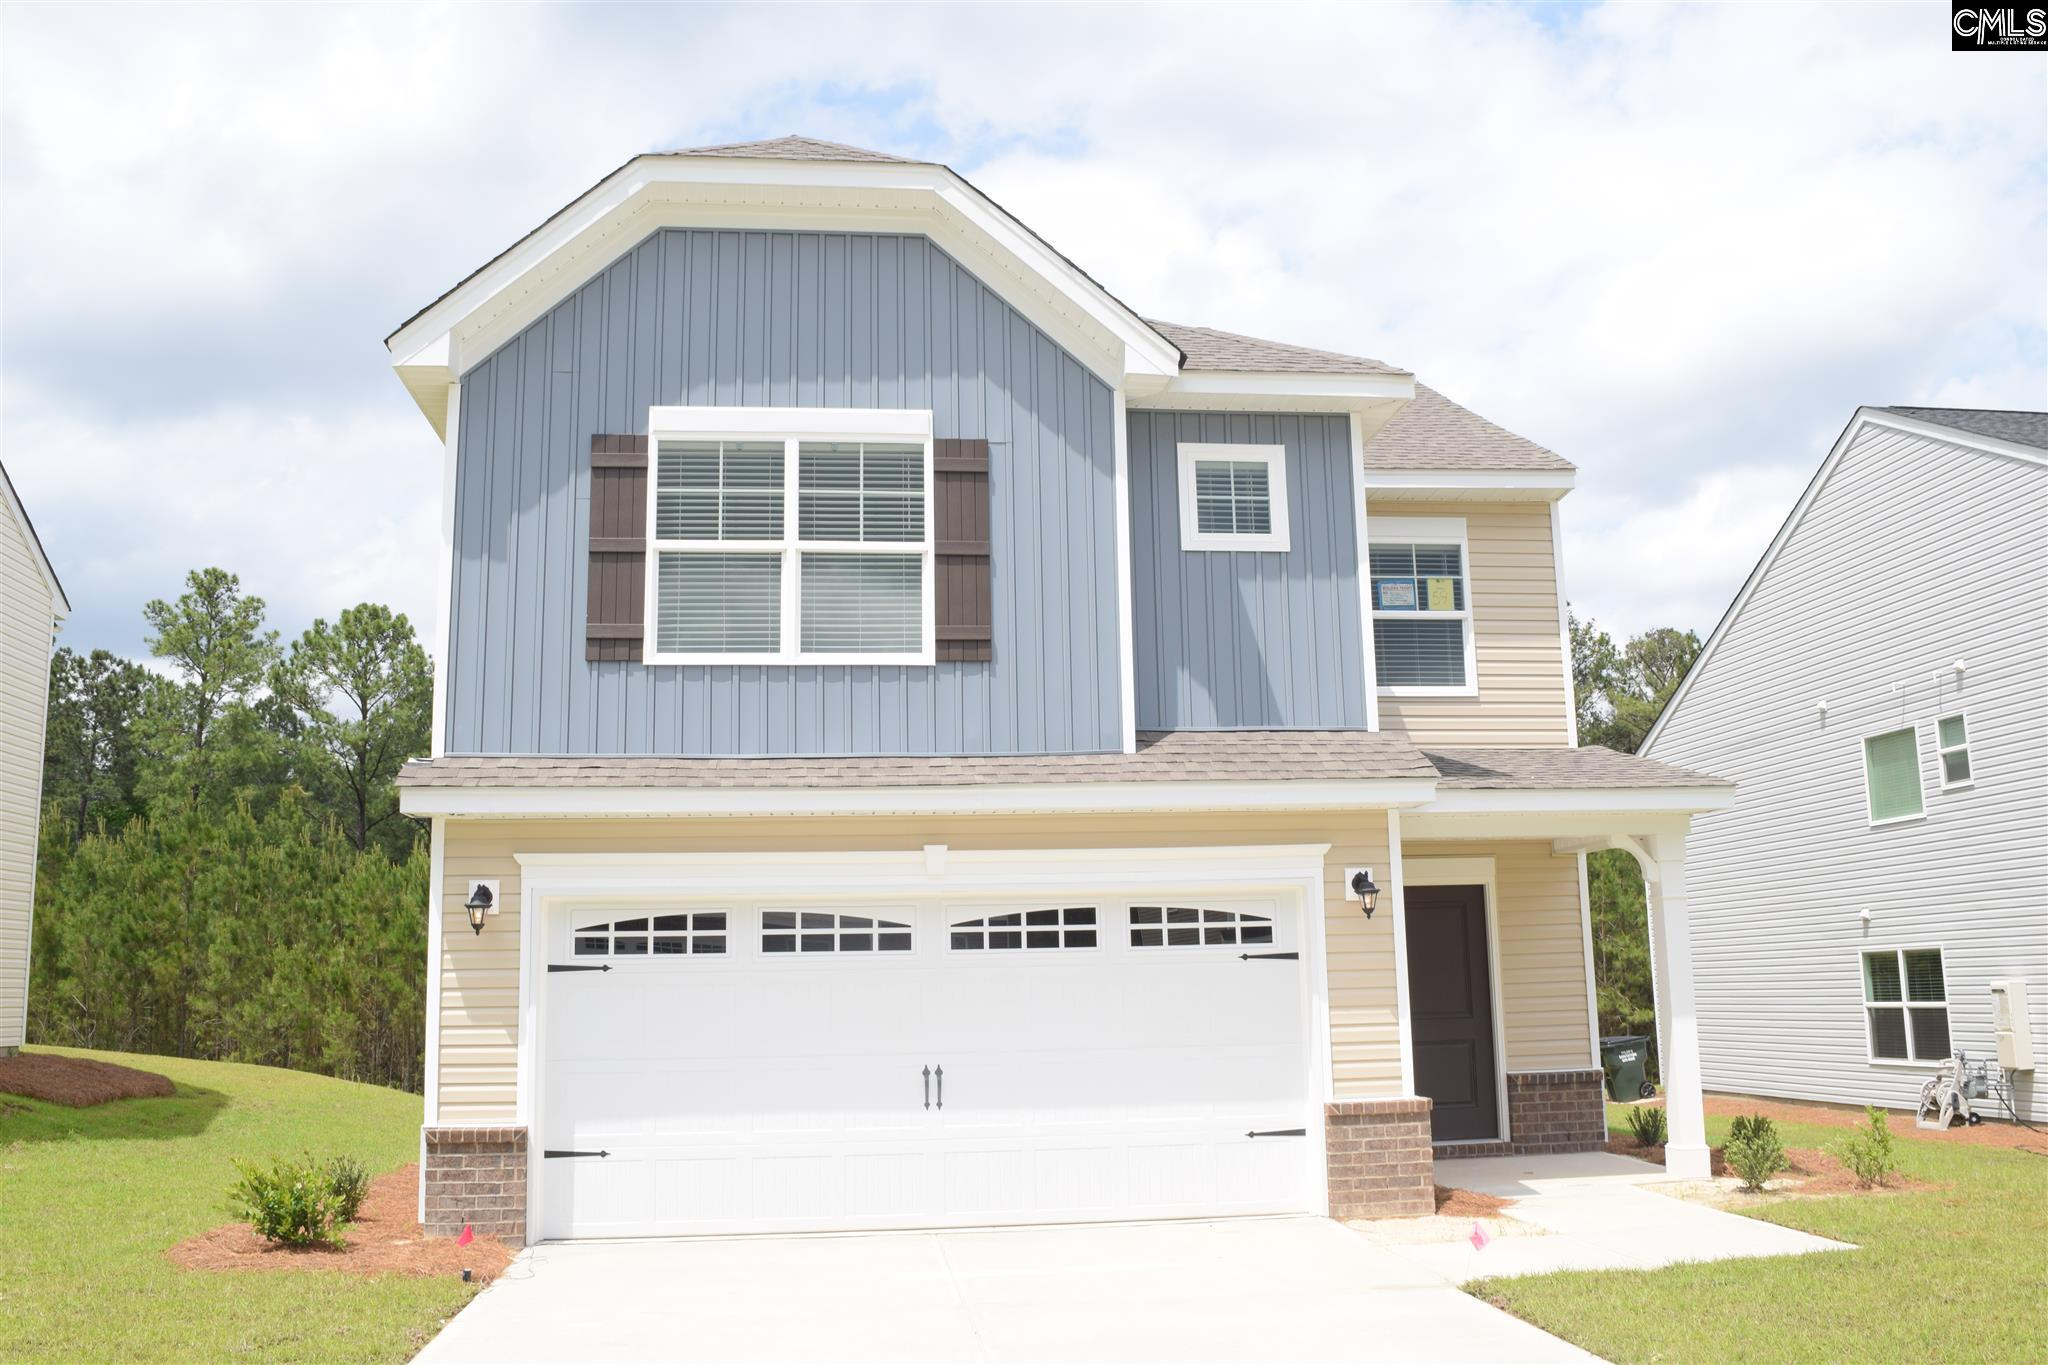 179 Turnfield West Columbia, SC 29170